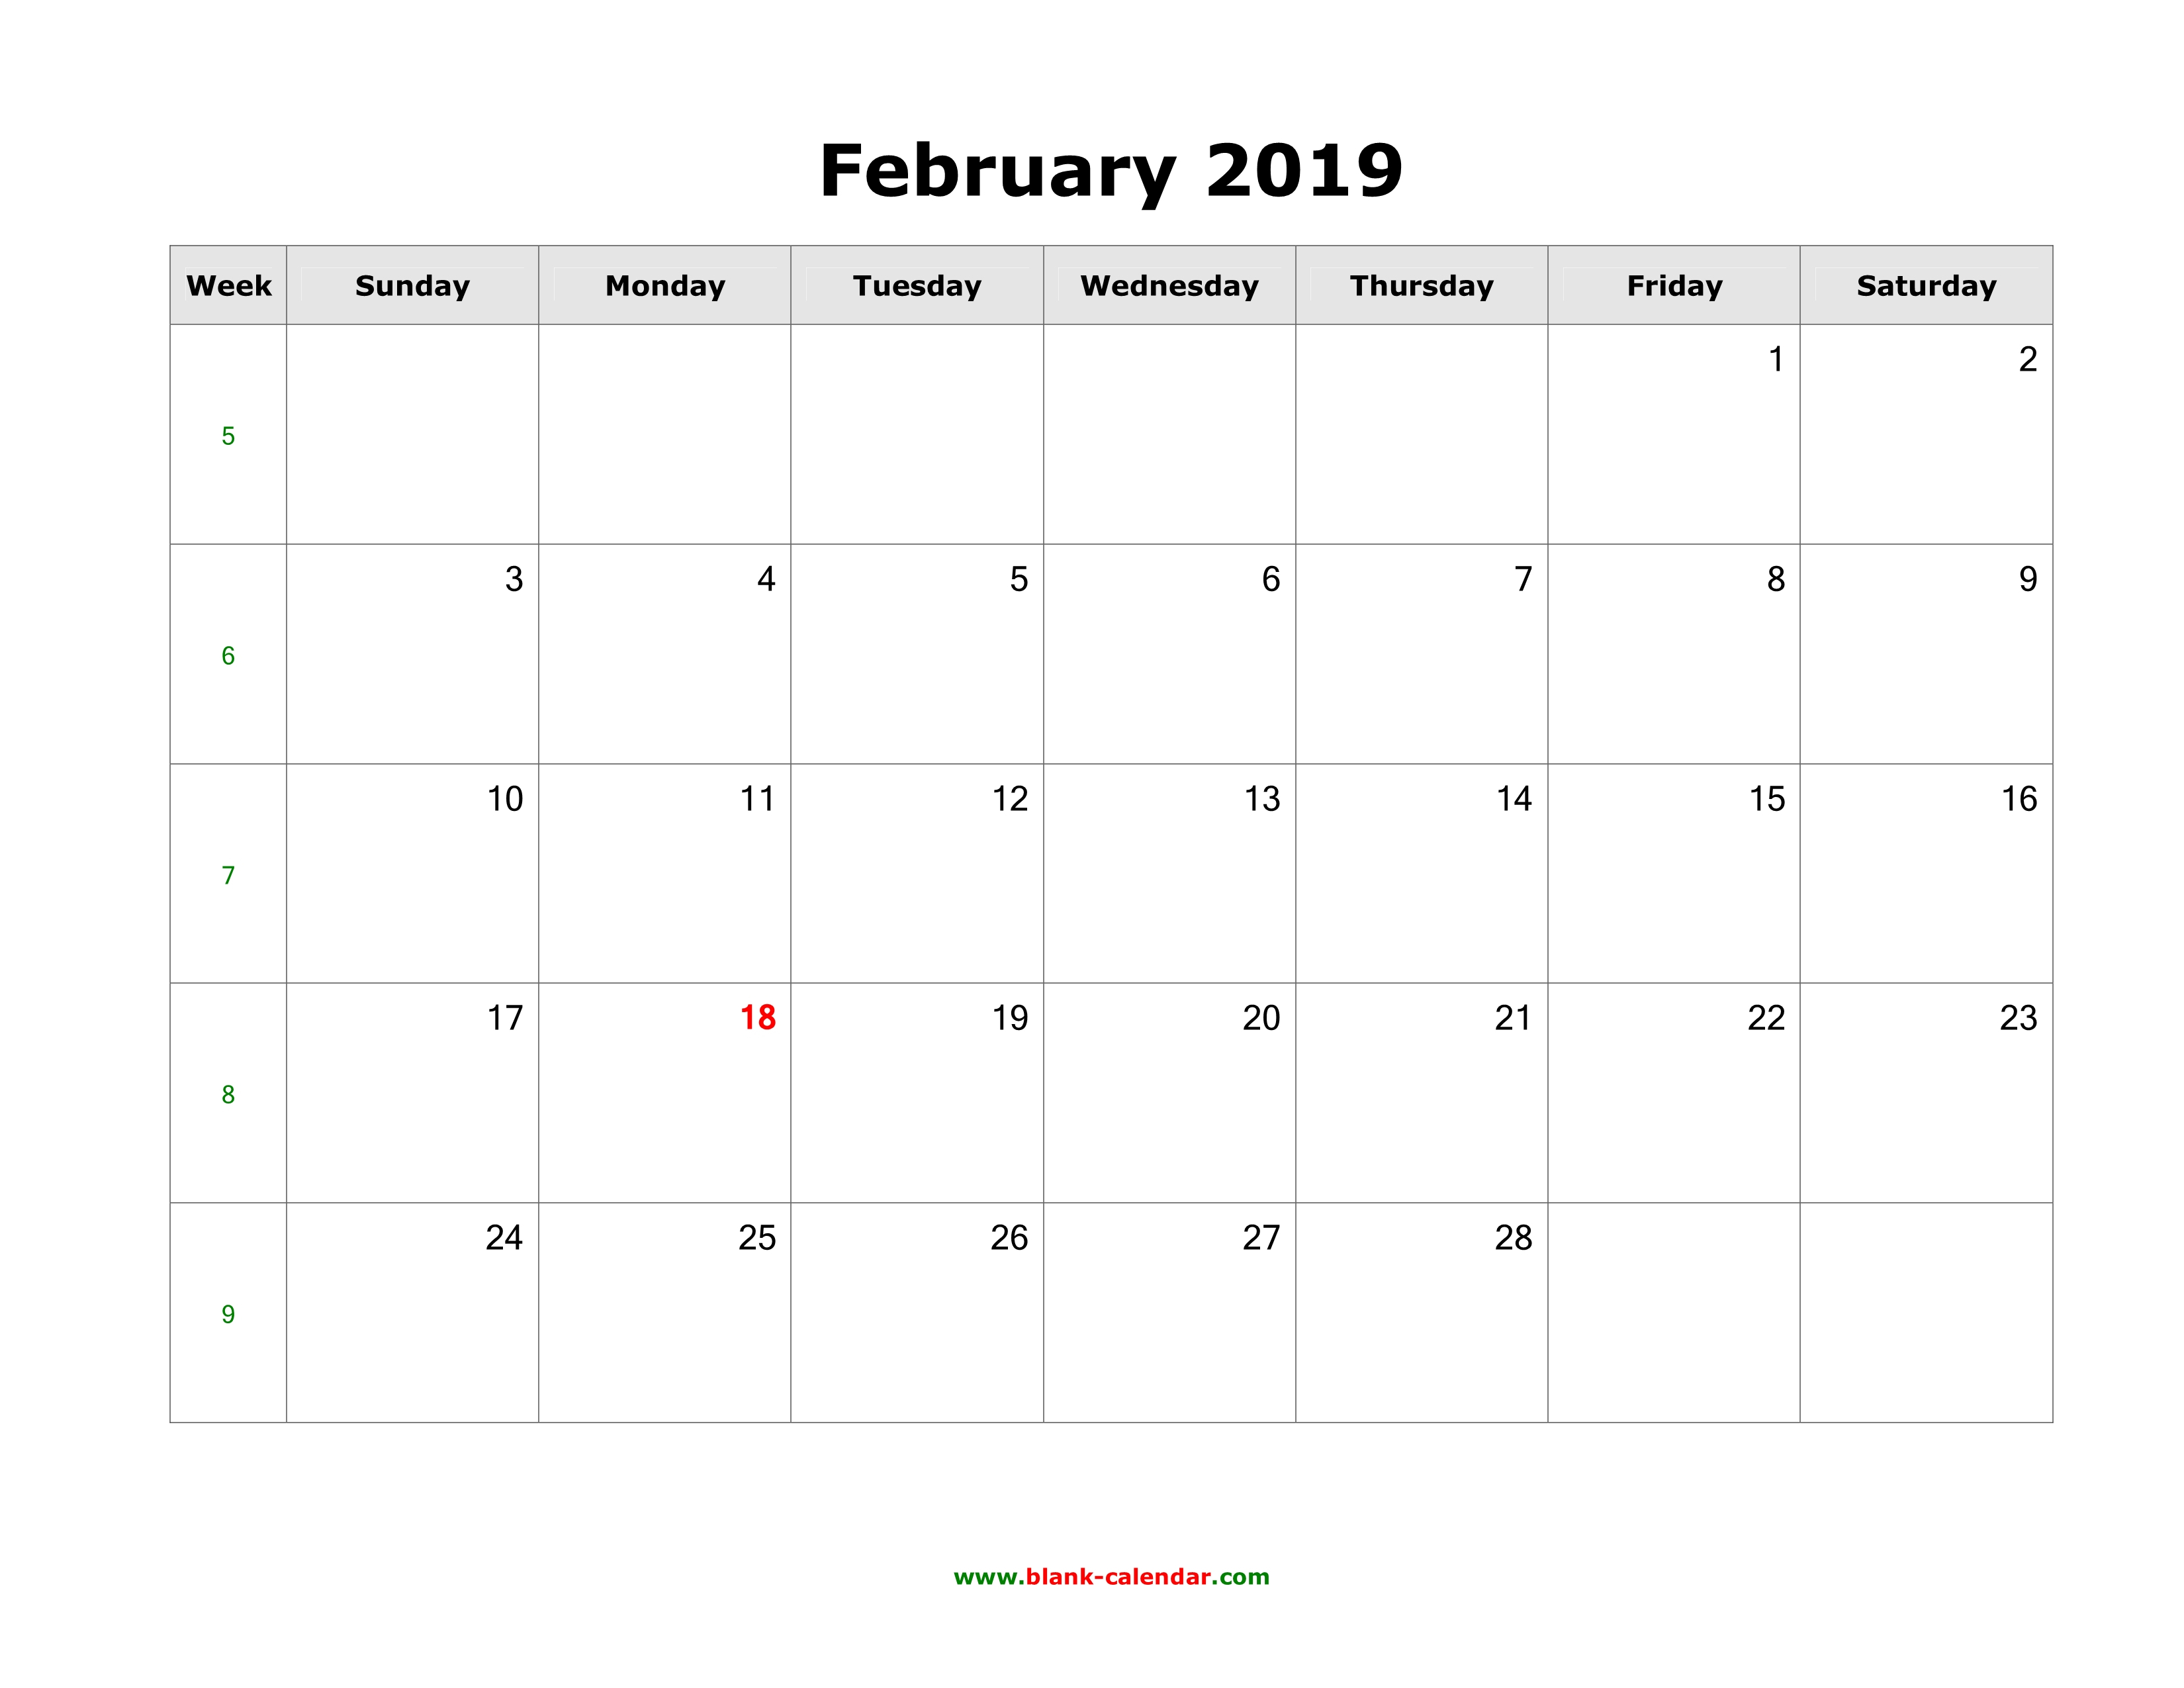 Download February 2019 Blank Calendar (Horizontal)